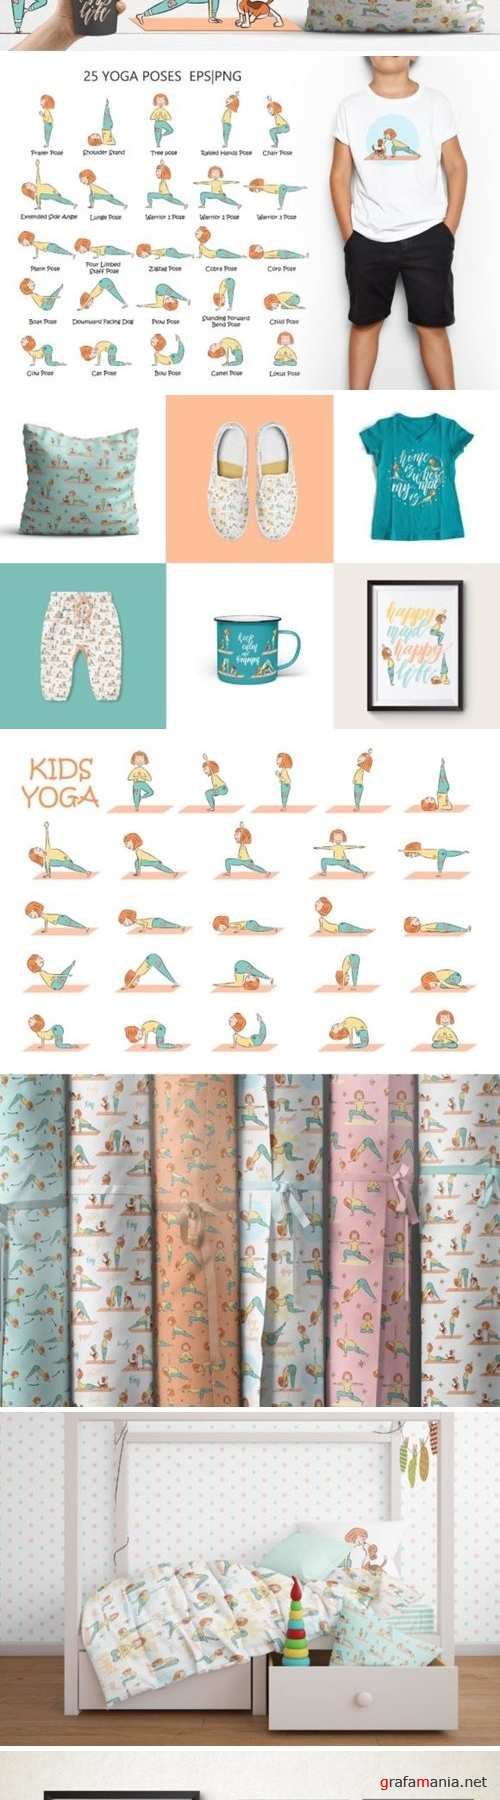 Yoga kid&dog collection - 2590712